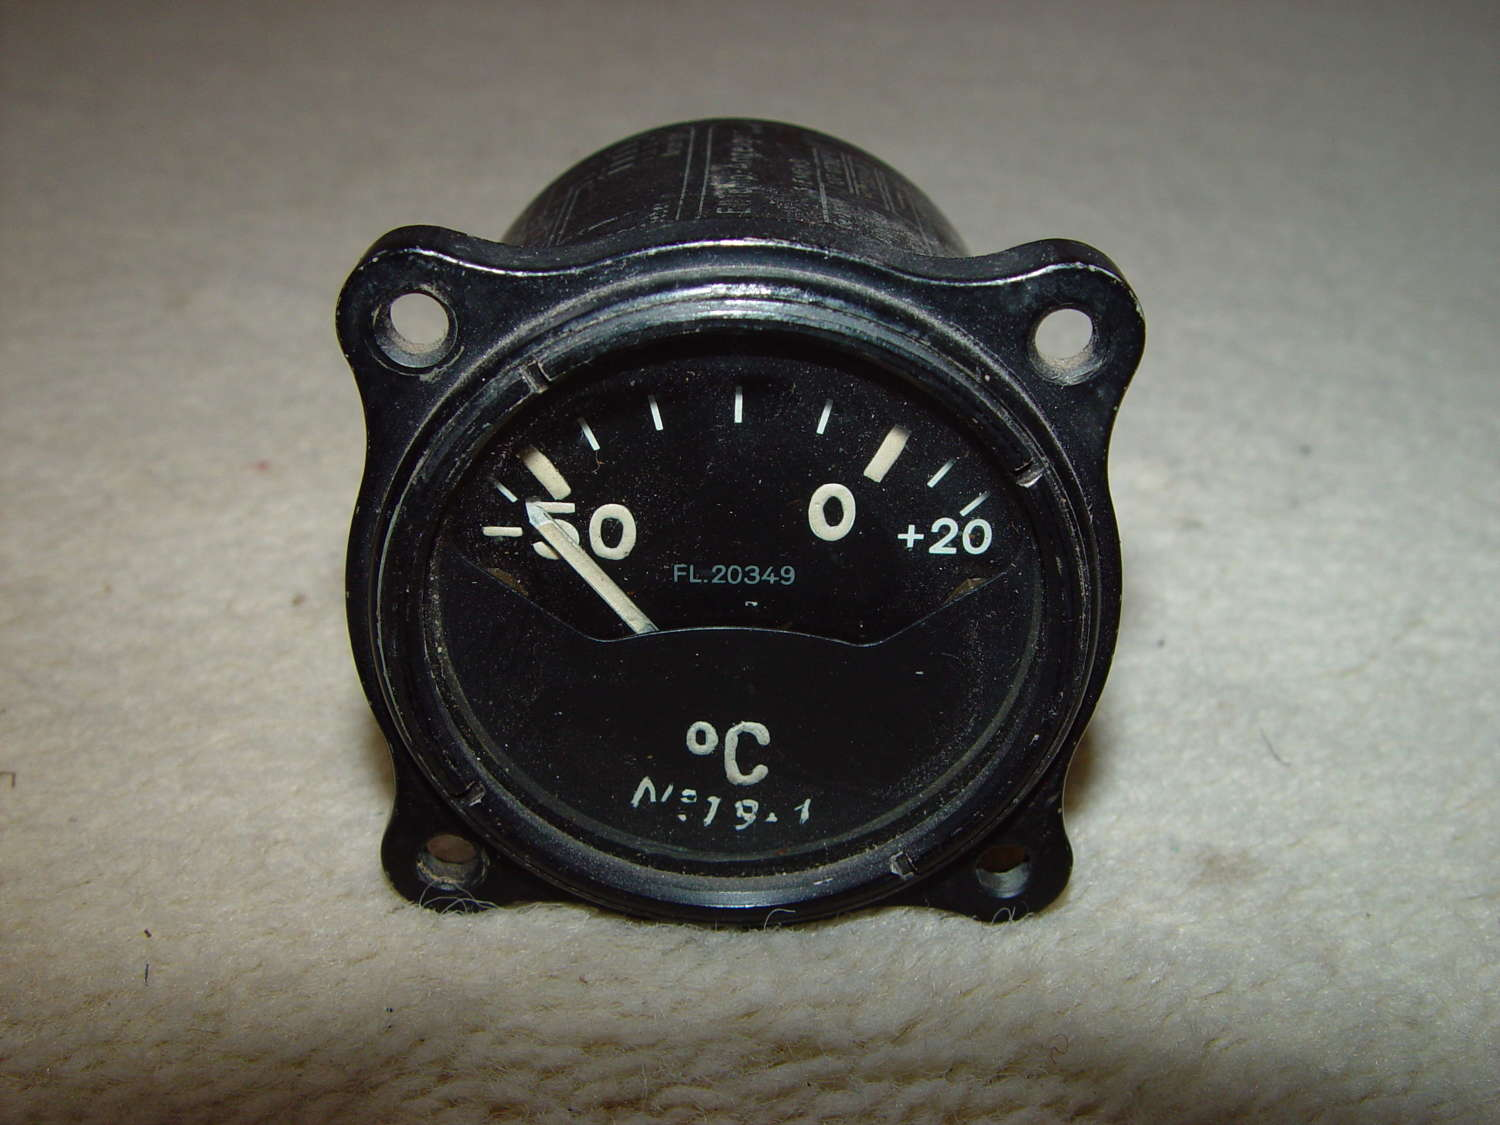 German Luftwaffe external temperature instrument -50/+20